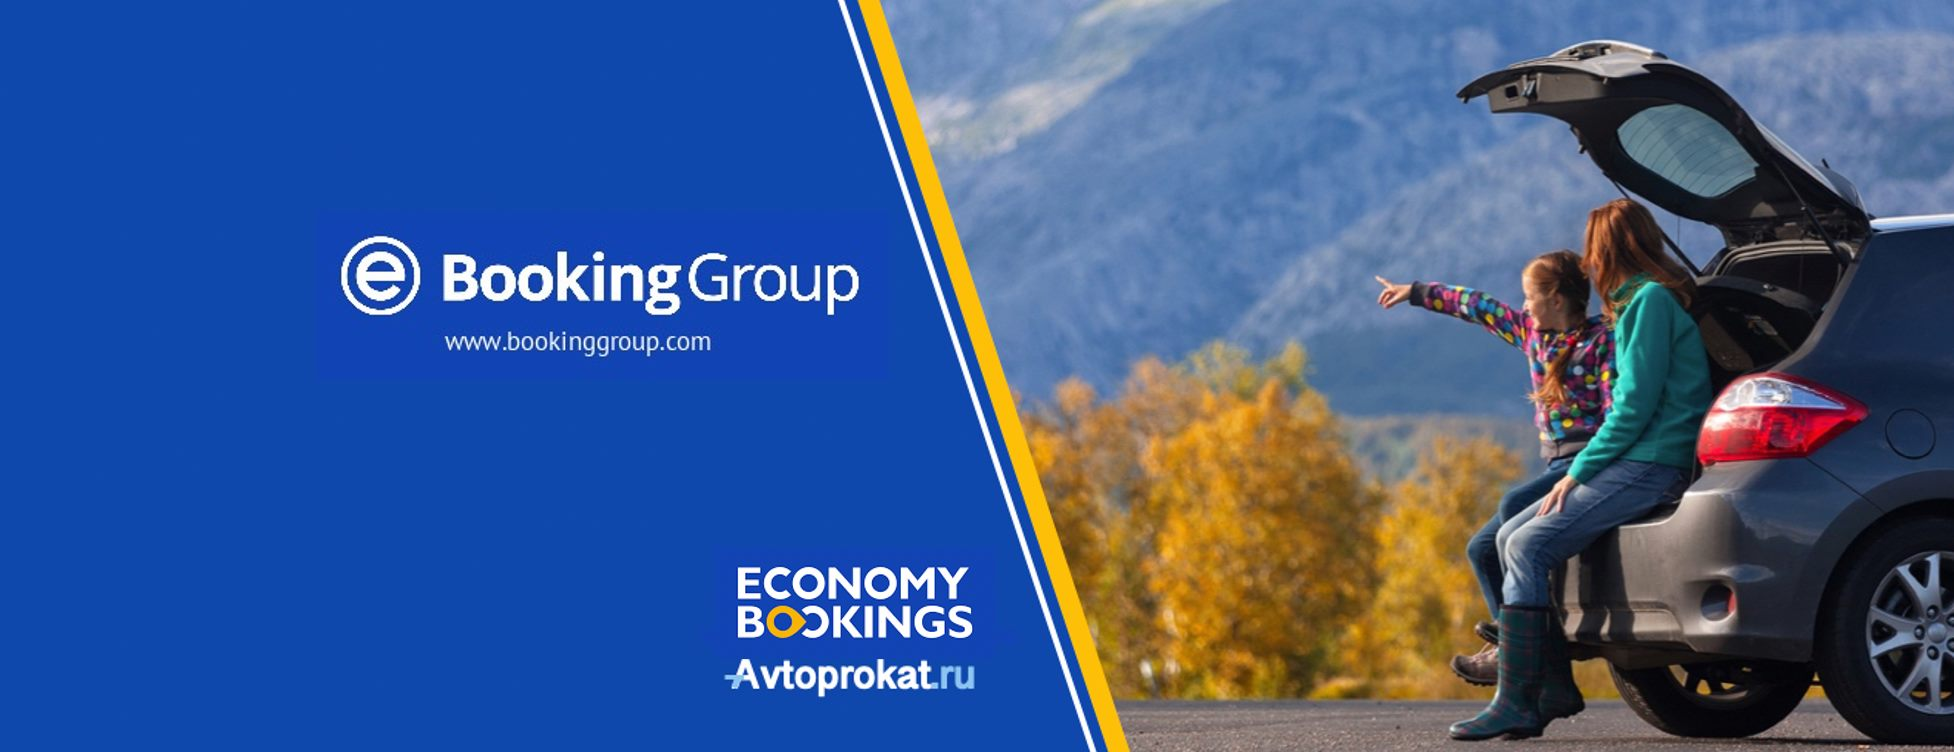 About Economy Bookings Homepage